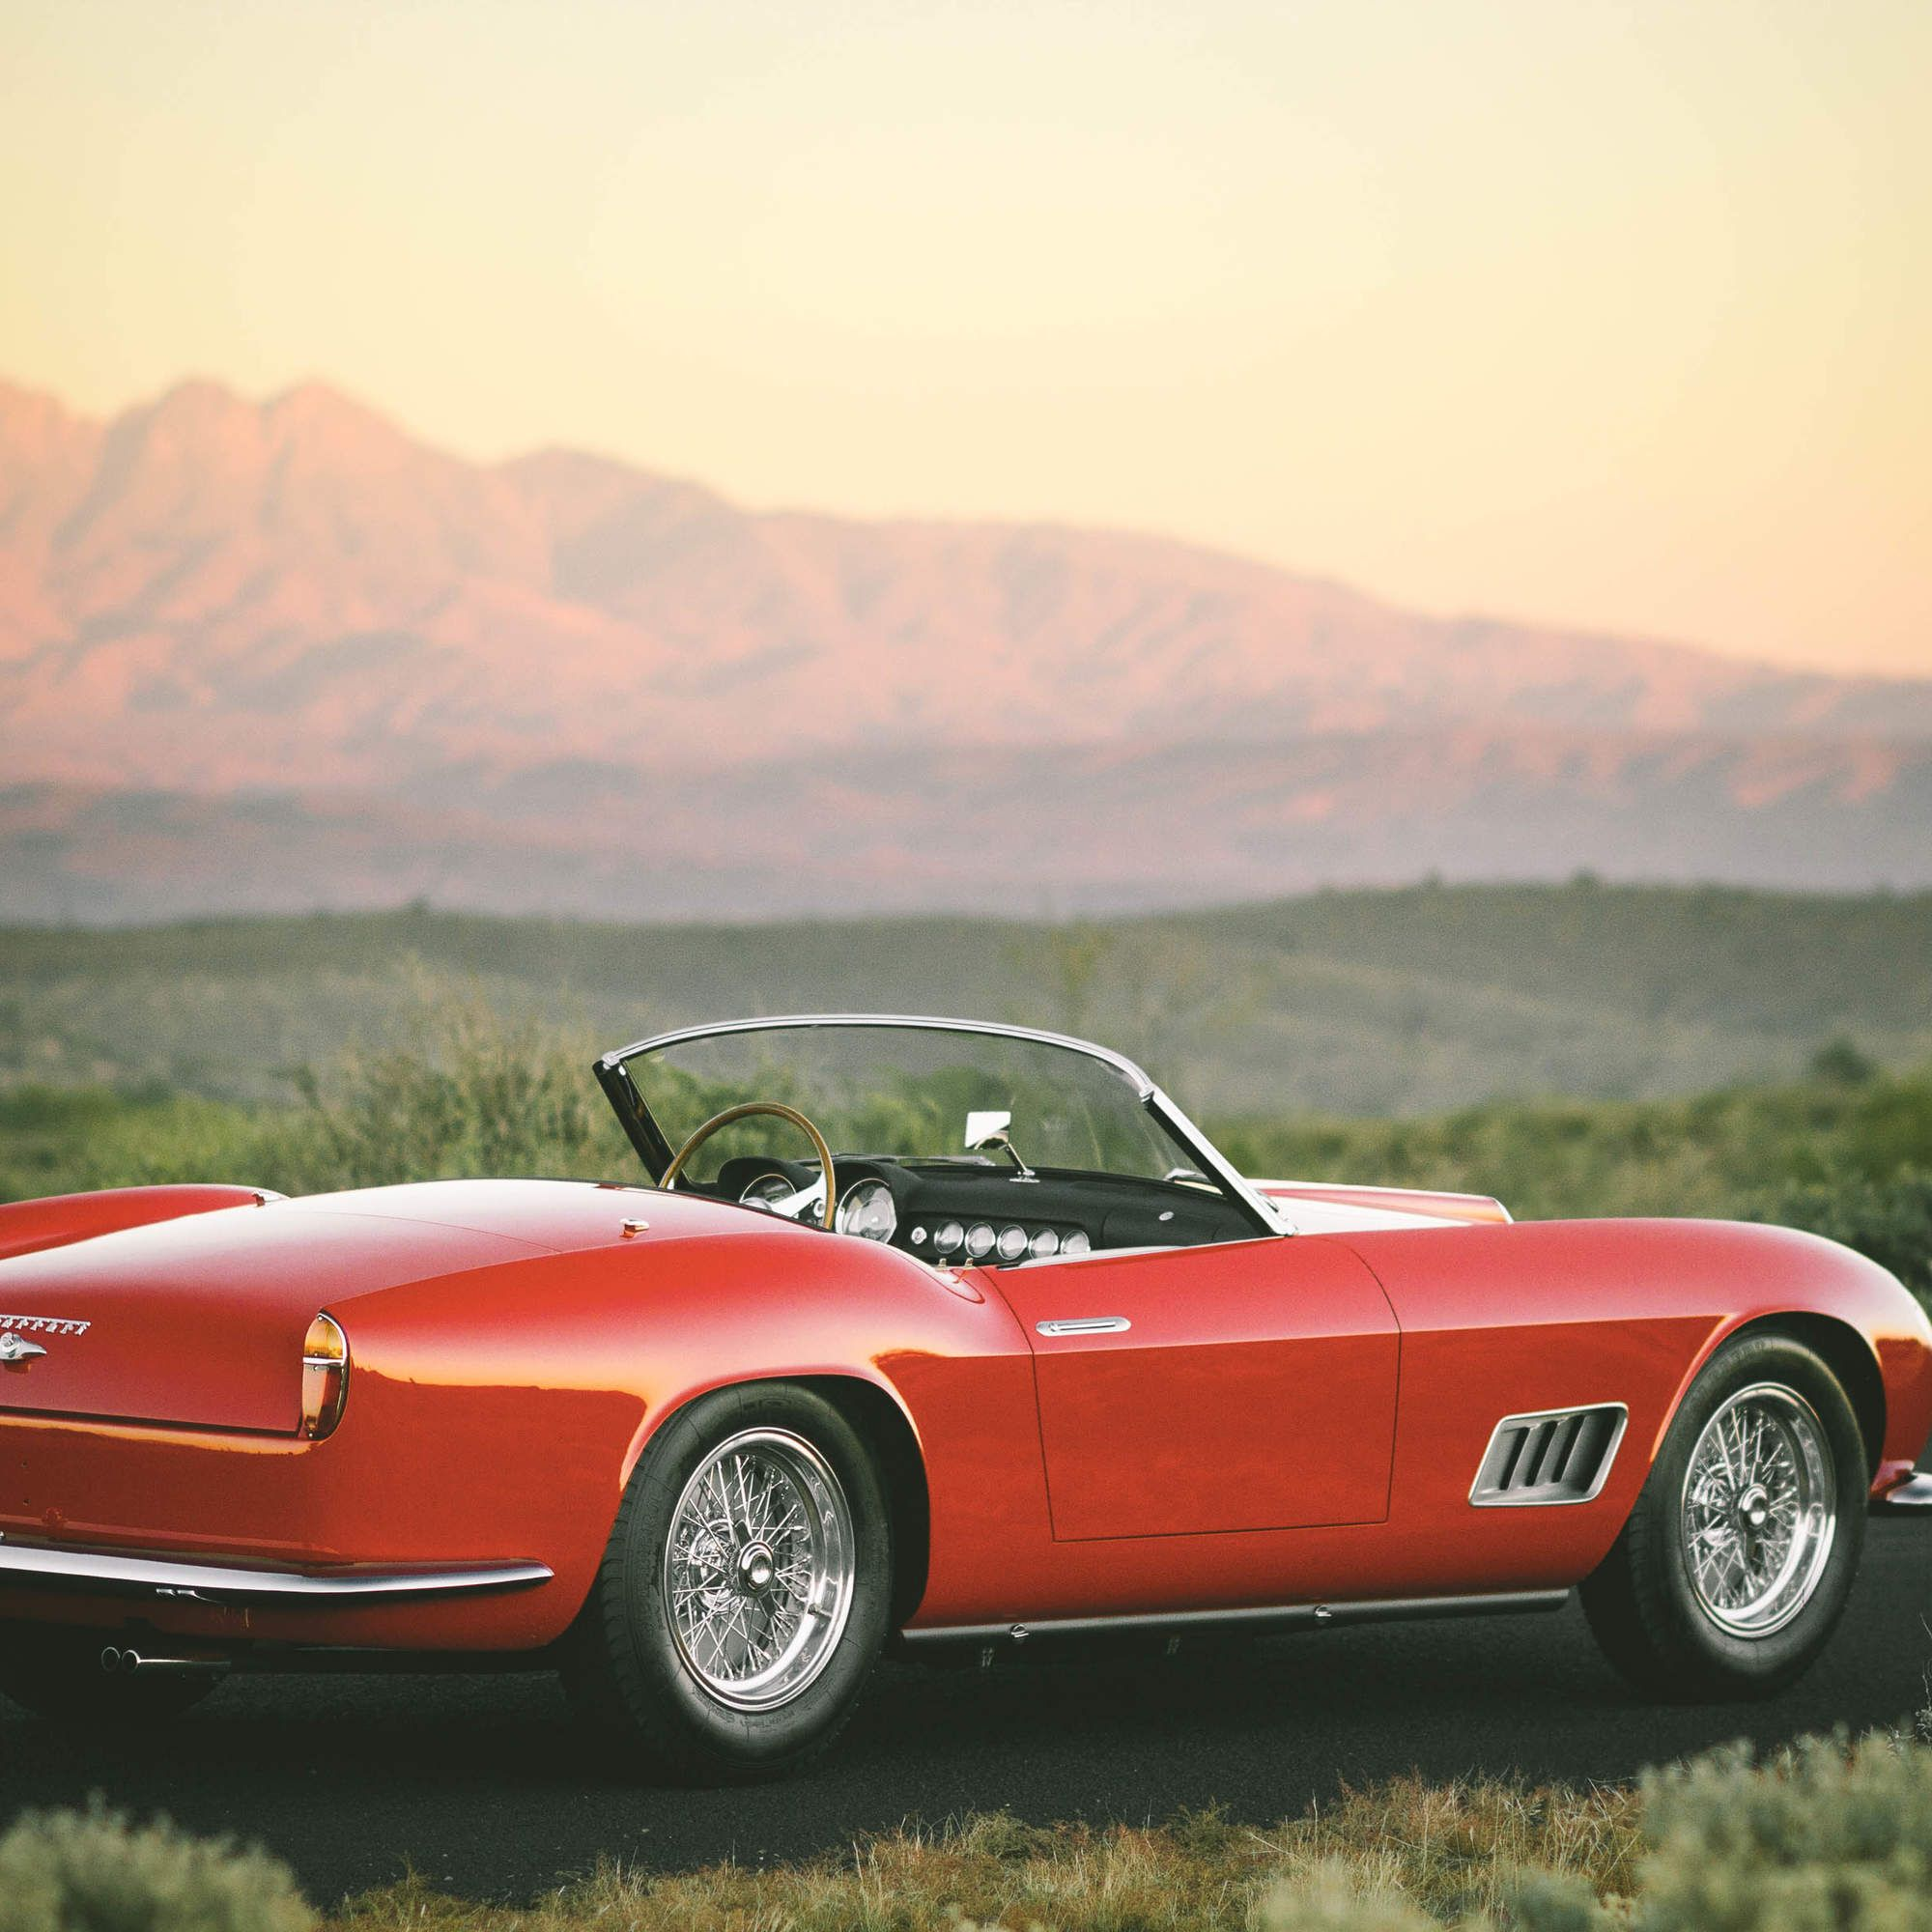 The Classiest Ferrari Ever Made Cars Pinterest Ferrari And Cars - Classiest sports cars